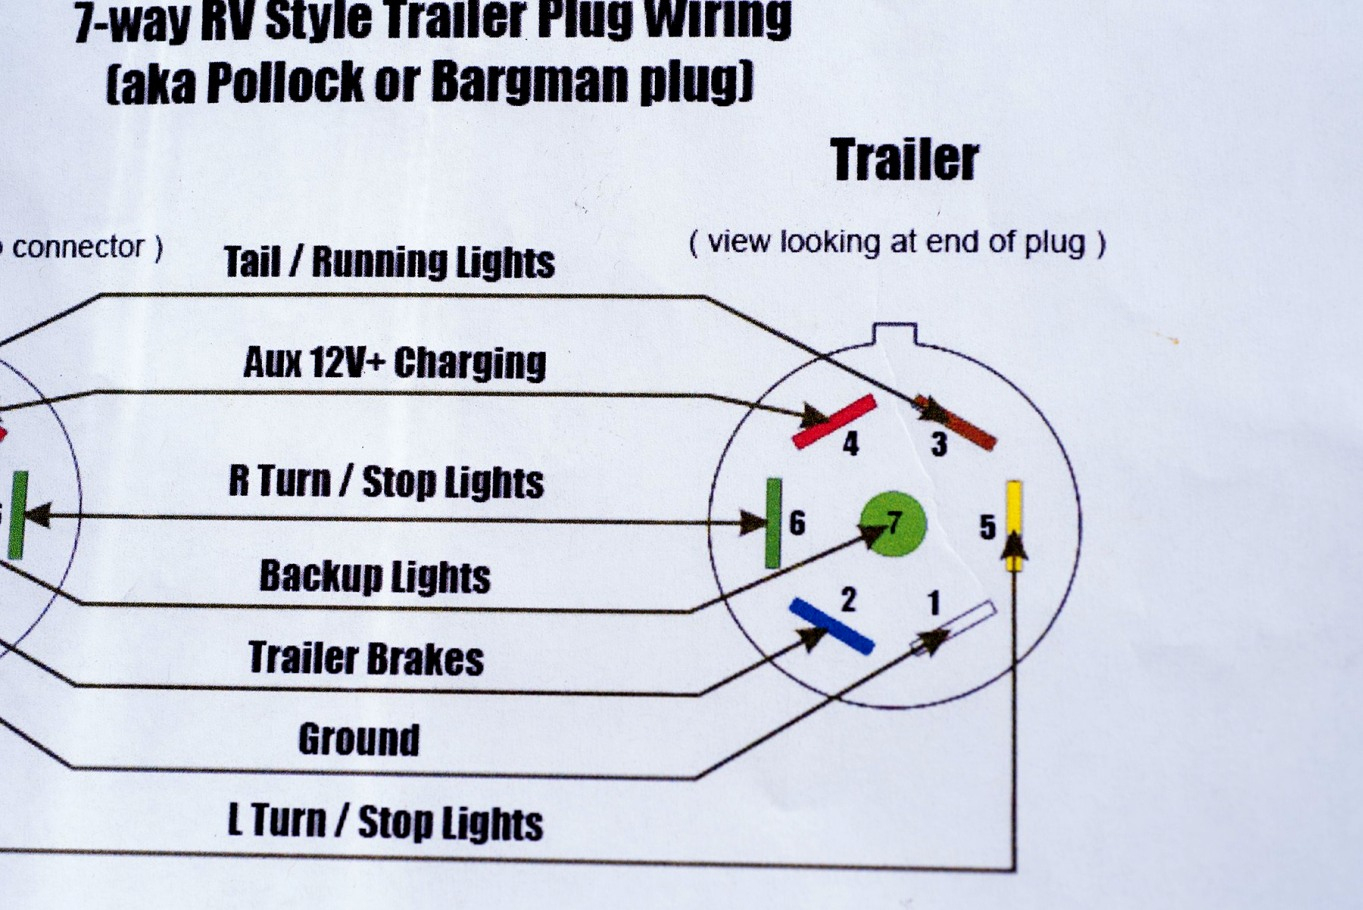 4 Way Flat Trailer Connector Wiring Diagram - Schema Wiring Diagram - Trailer Lights Wiring Diagram 4 Way